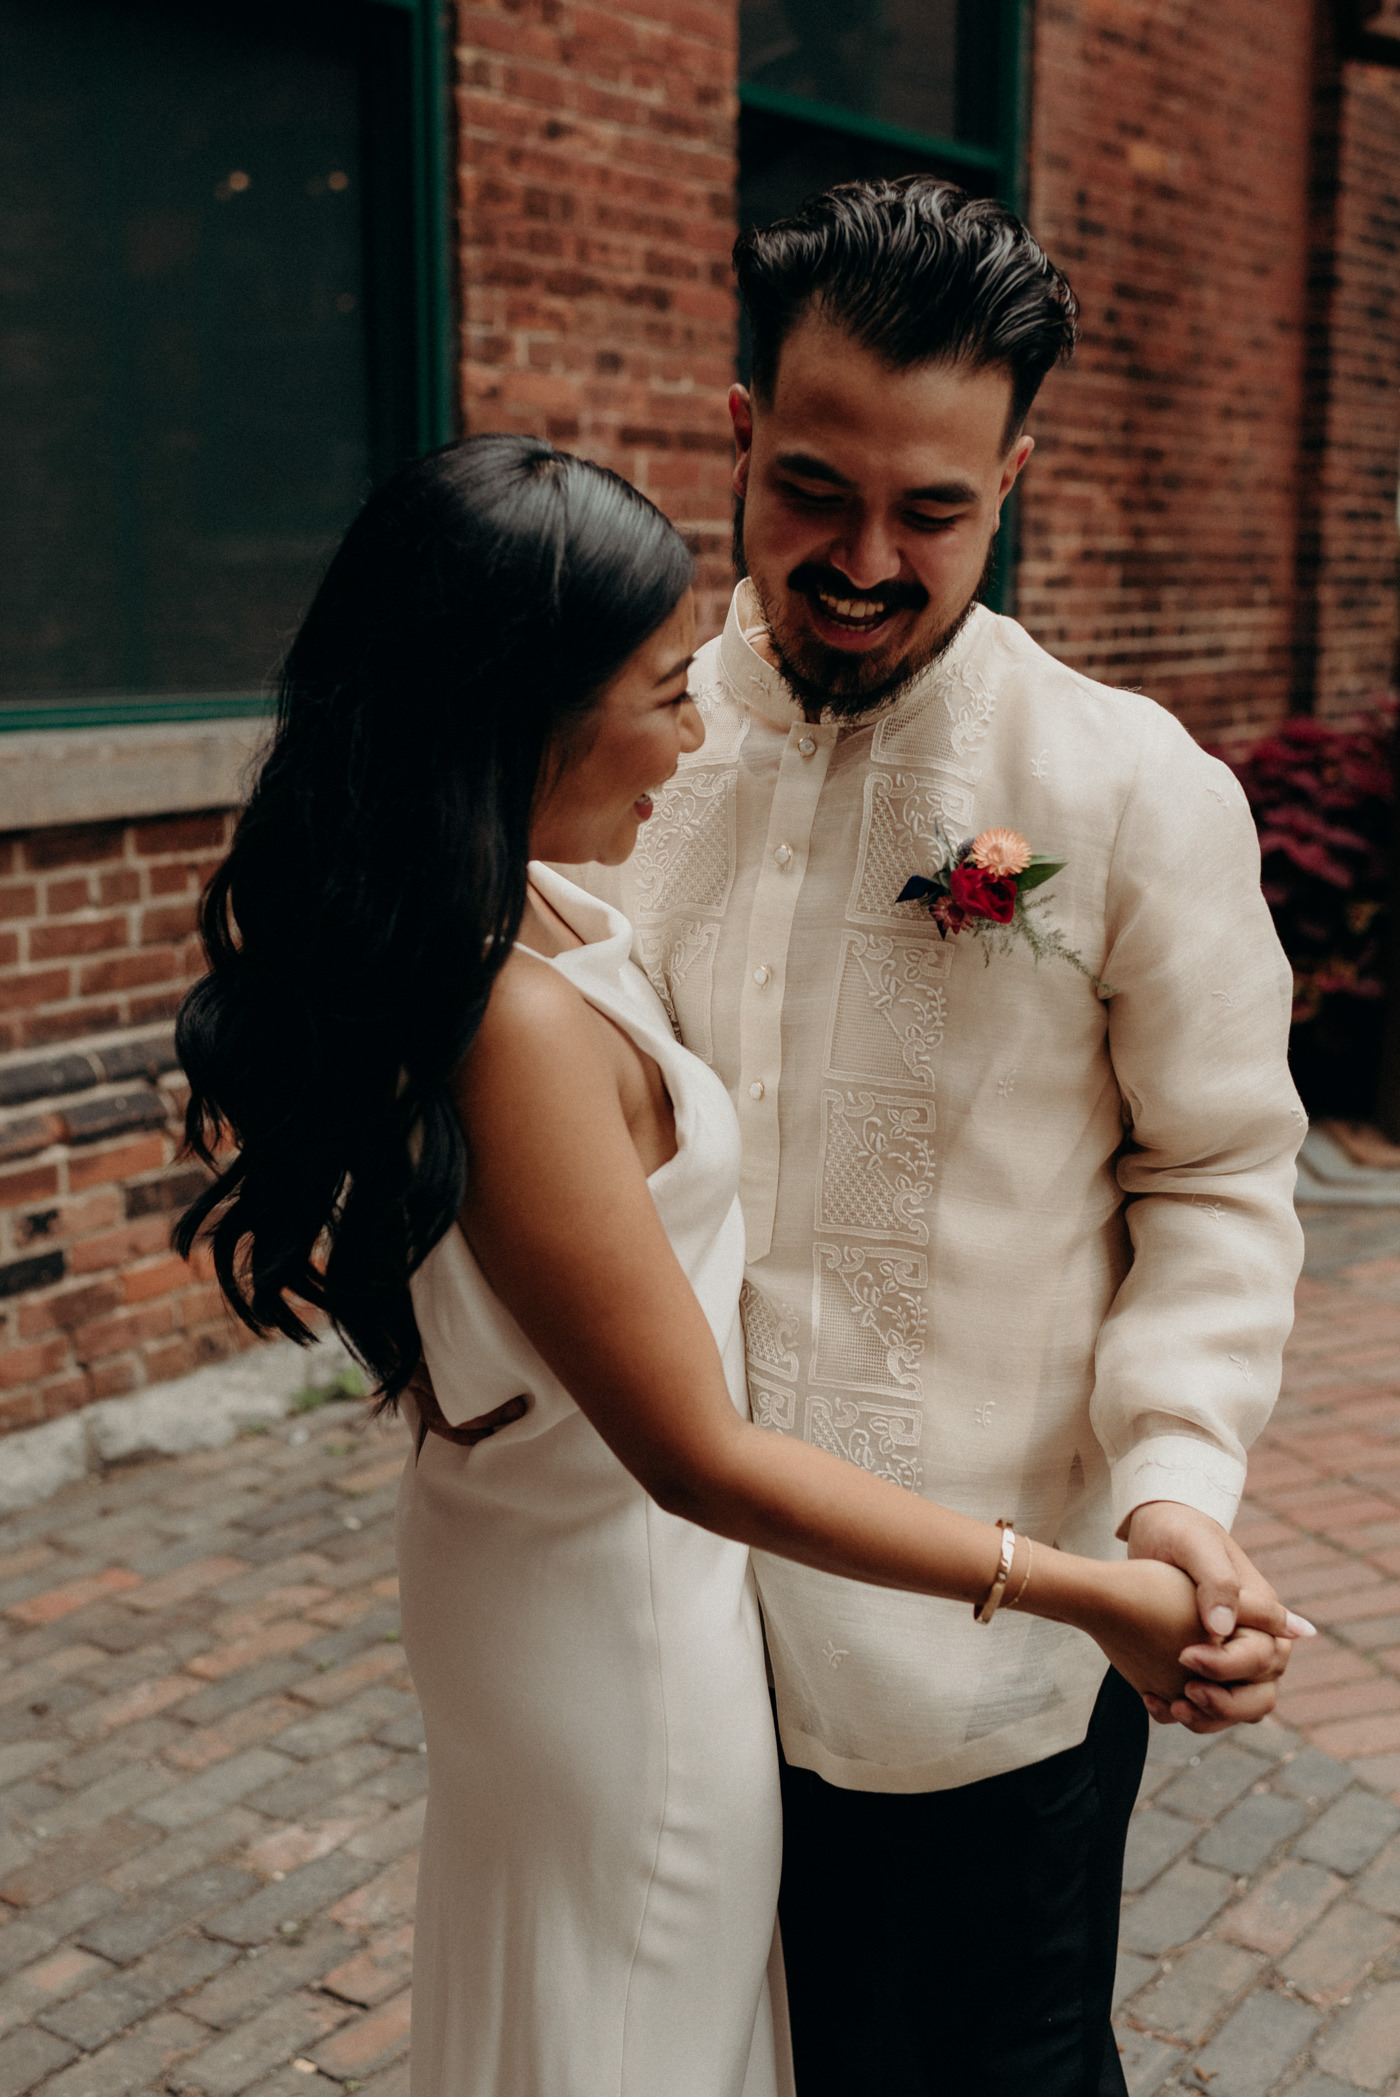 Distillery district wedding portraits